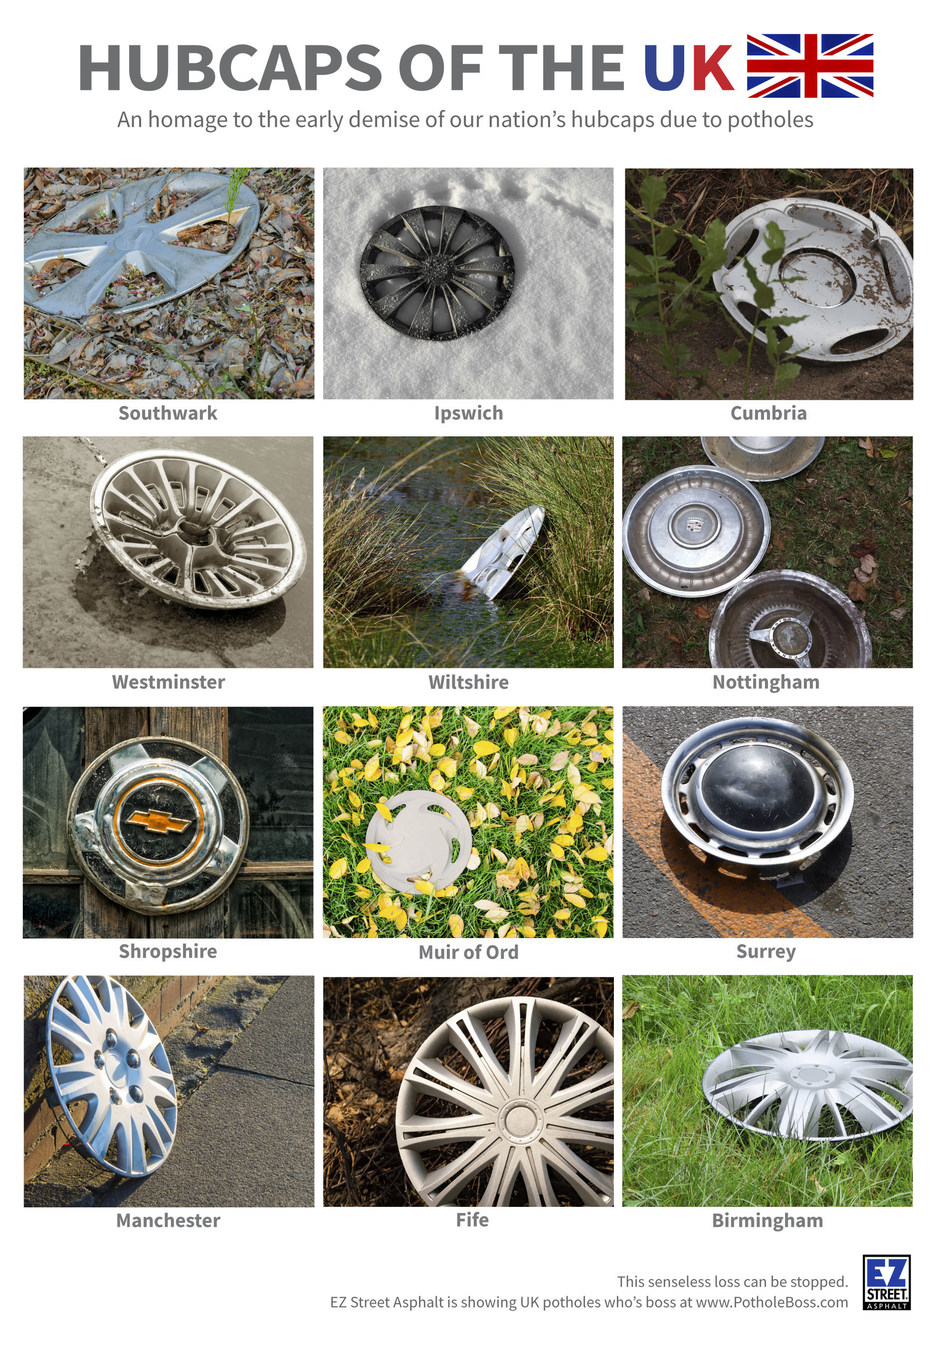 "A ""Hubcaps Of The UK"" campaign is being used to draw attention to not only the pothole problem, but to a viable solution that works within existing budgets."